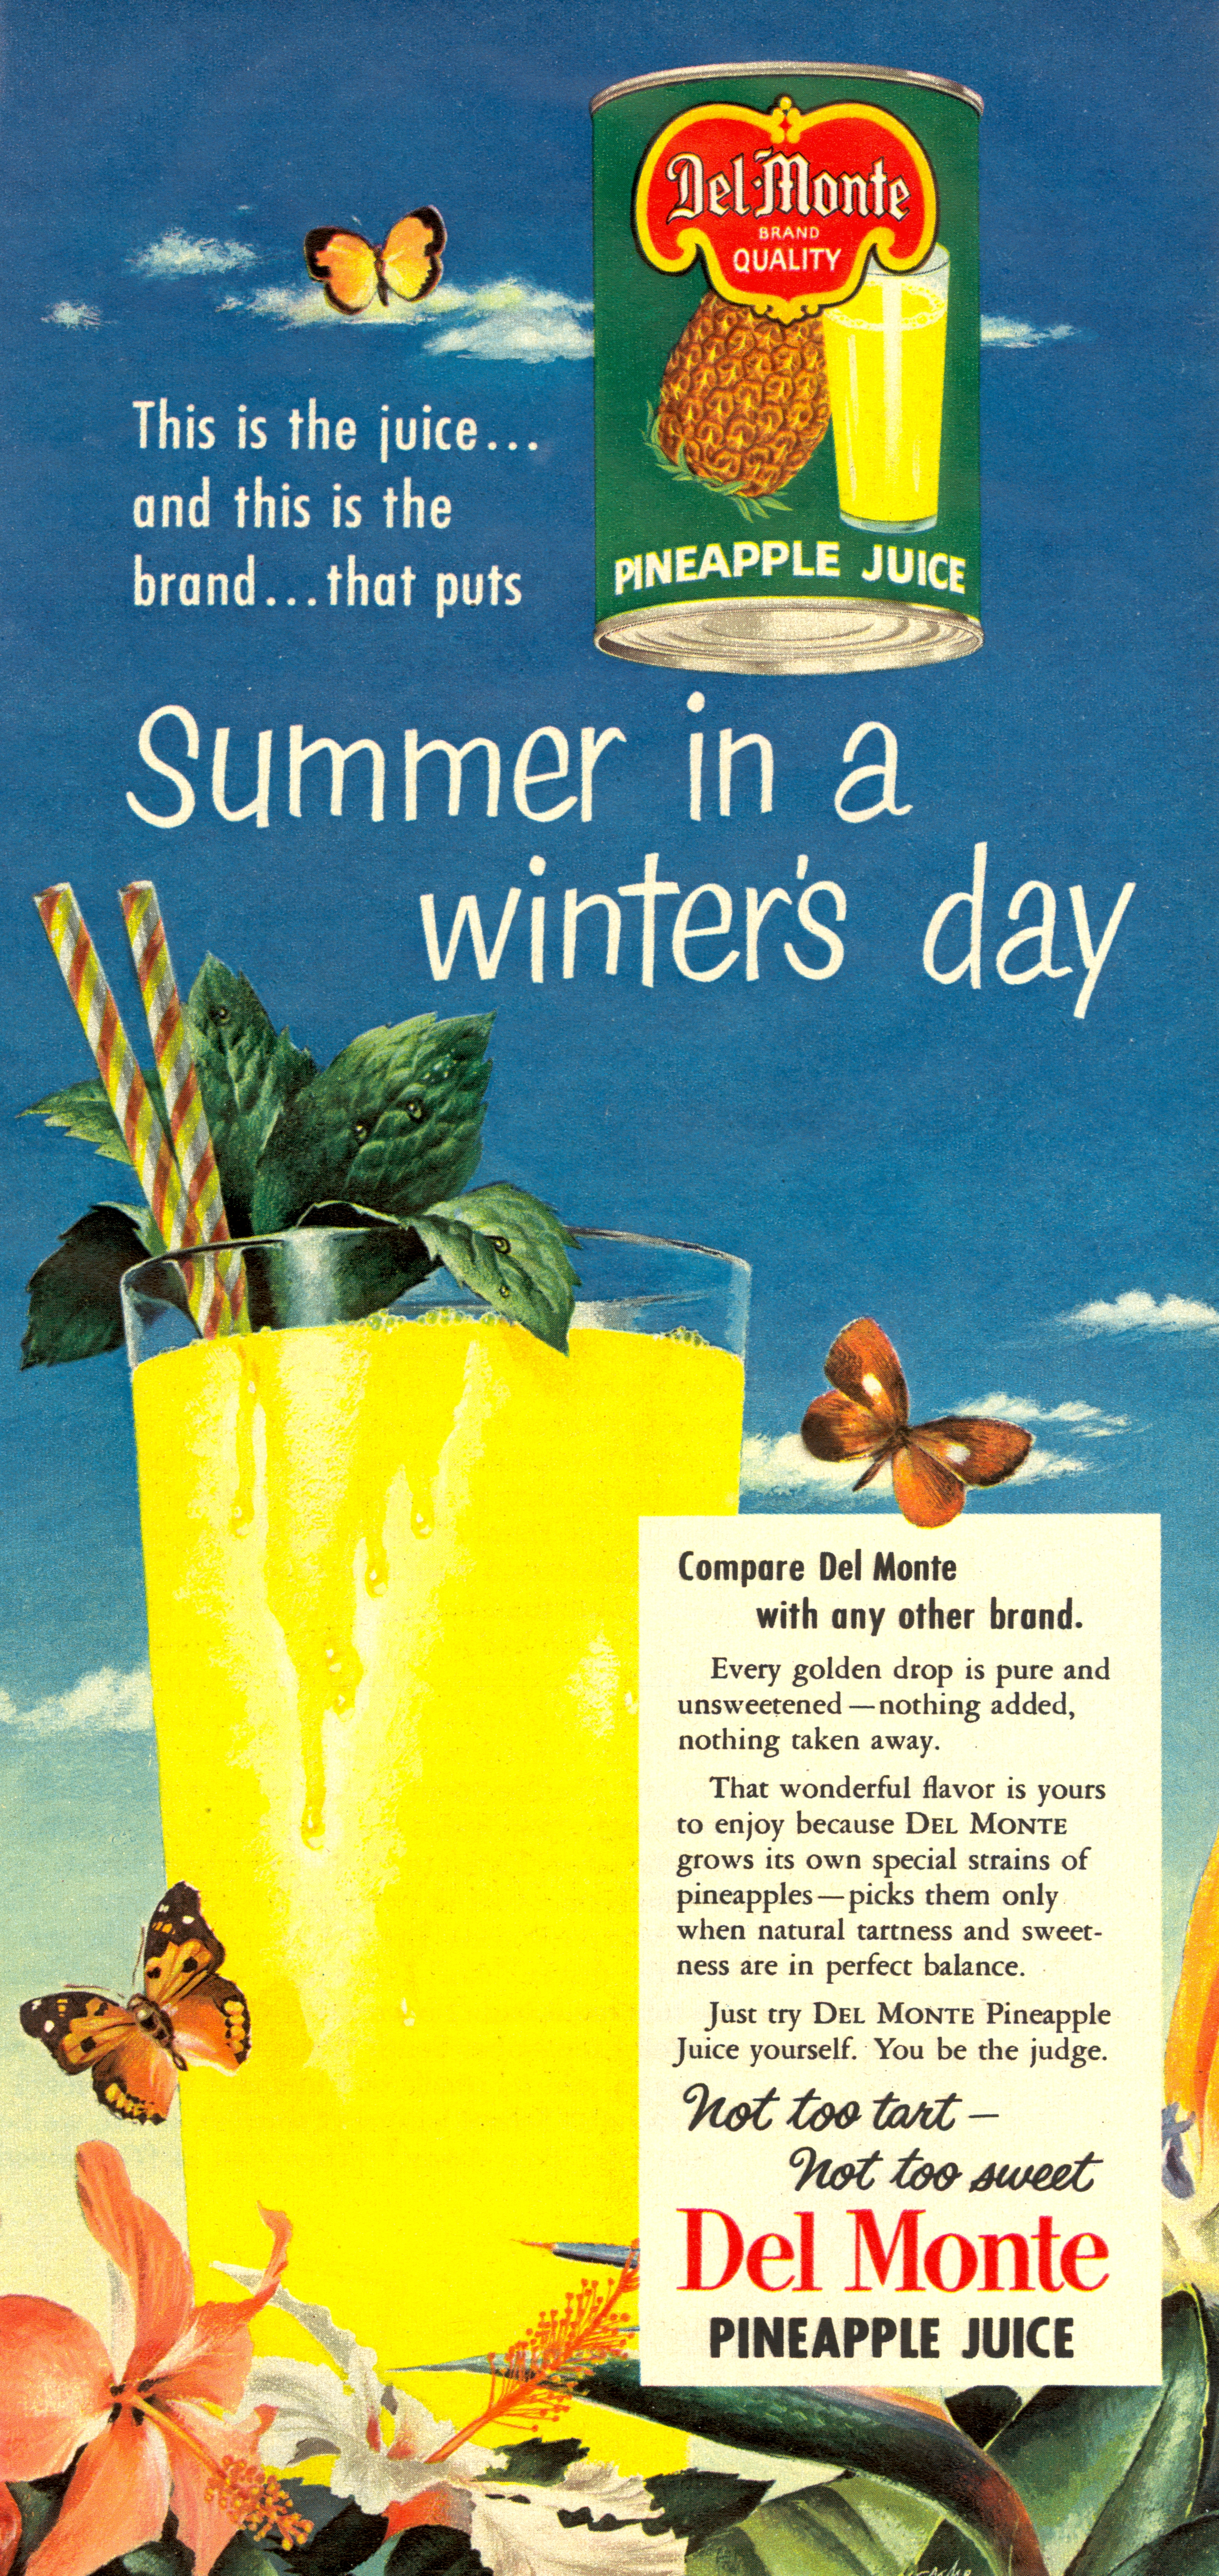 Del Monte Pineapple Juice - published in Woman's Day - February 1952